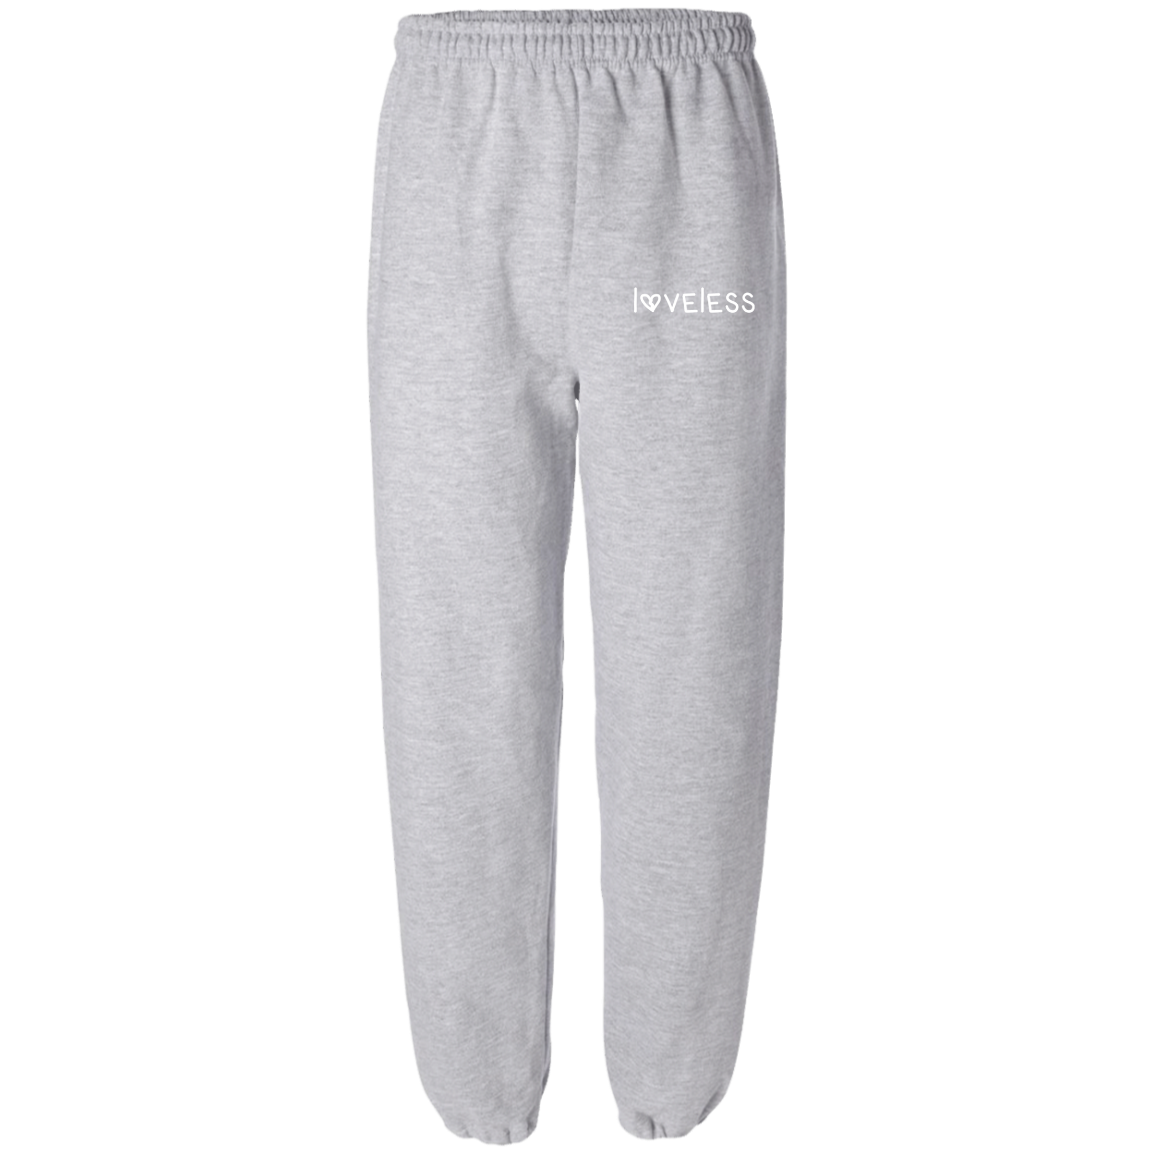 Brandon Army Loveless Sweats